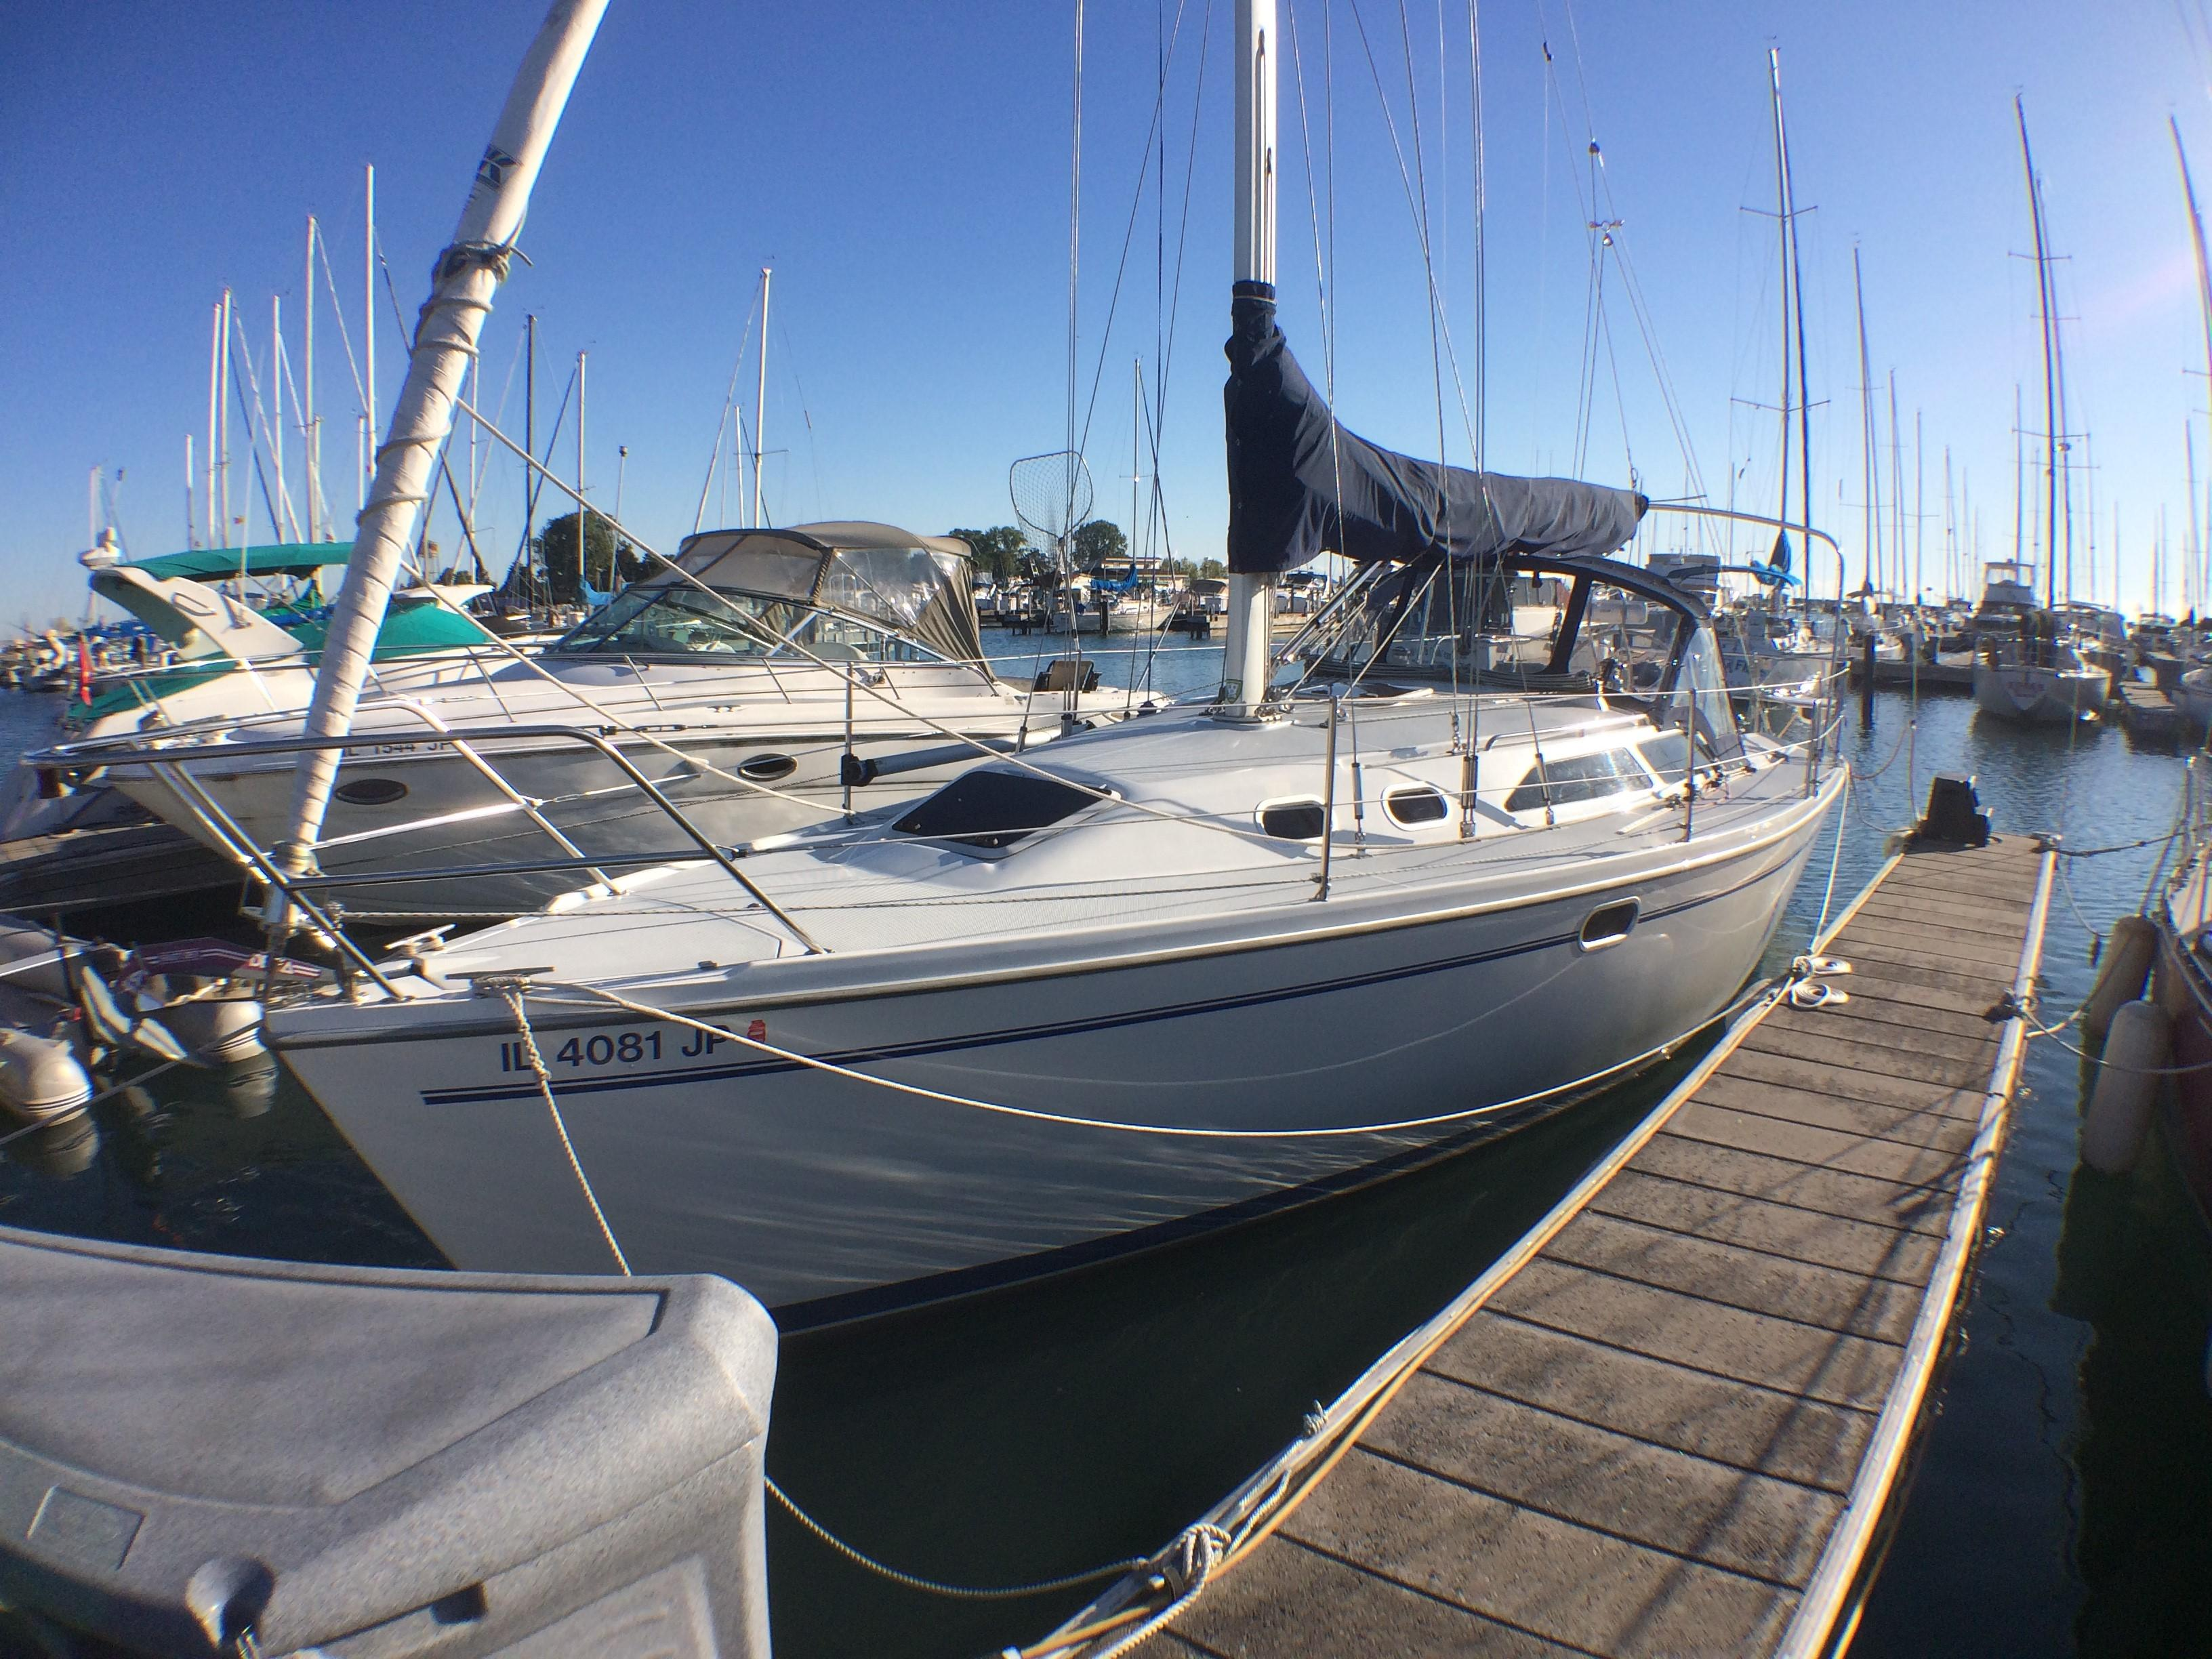 Catalina 320 Owners Manual 27 Wiring Diagram 2002 Sail Boat For Sale Www Yachtworld Com Rh Mark Ii Aft Birth Size